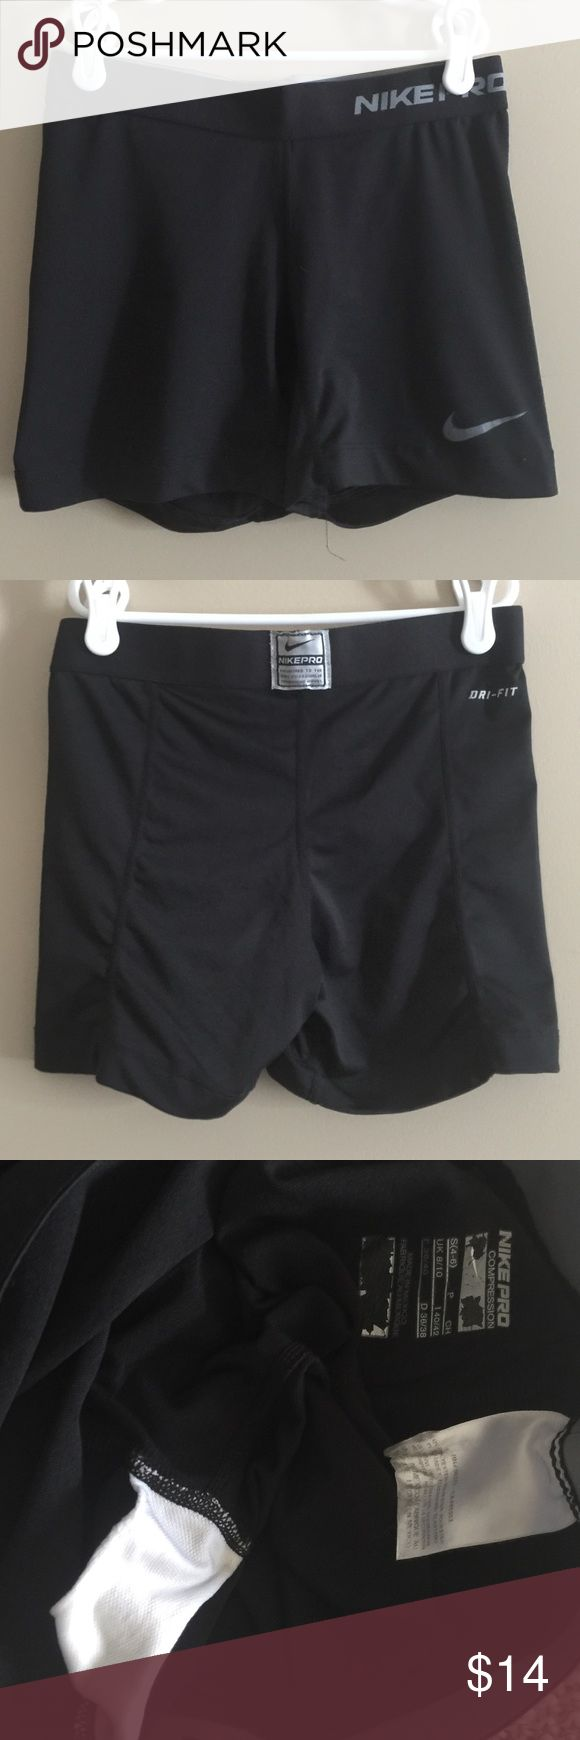 Nike Compression shorts Great condition! No wear at any seams. Graphic screen-prints are slightly worn from washing. These will last you! Nike Pants Leggings